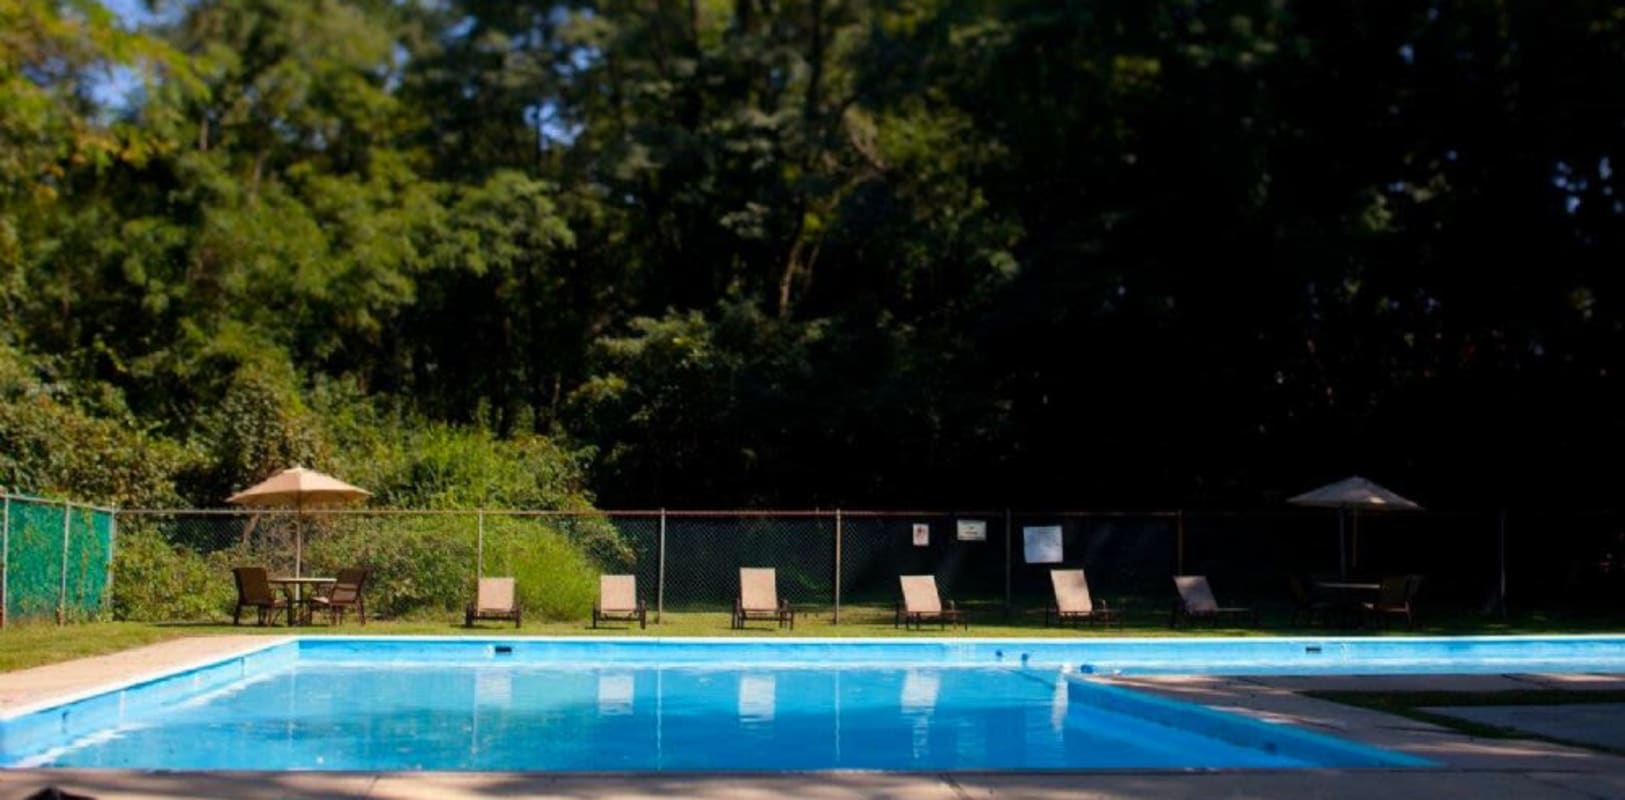 Refreshing swimming pool at Versailles Apartments in Ewing, New Jersey